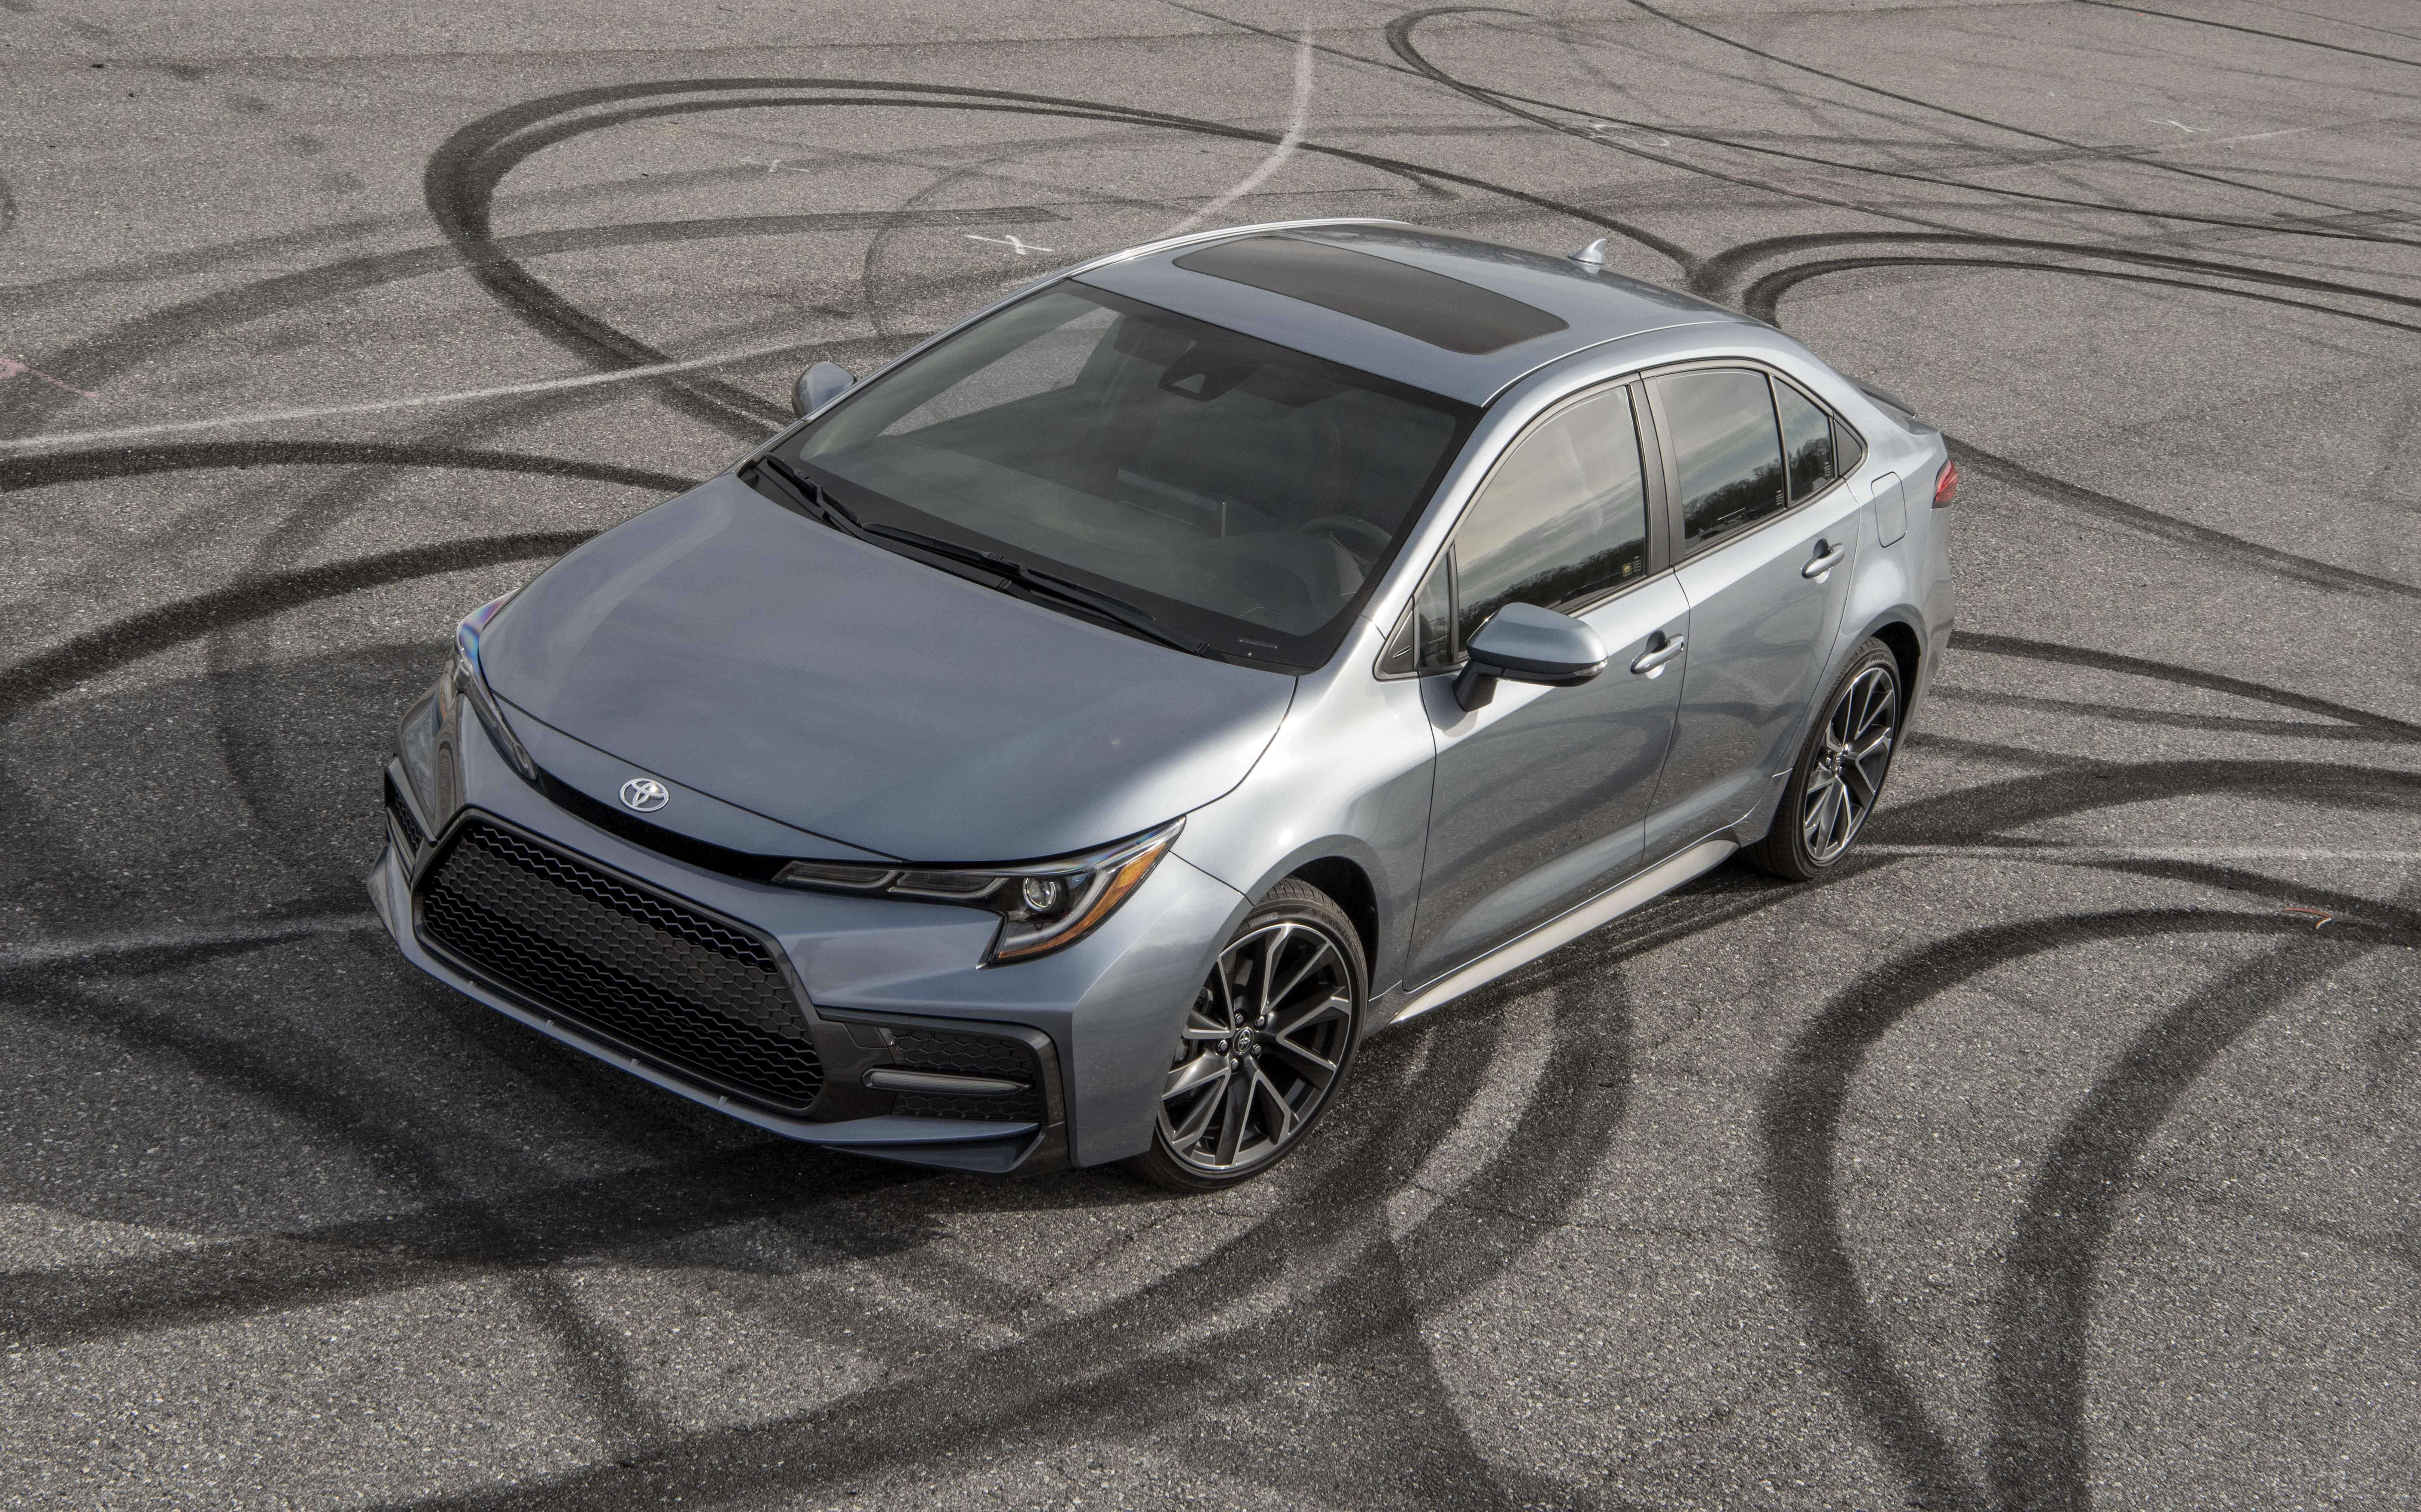 51 All New Toyota Design Competition 2020 Research New by Toyota Design Competition 2020